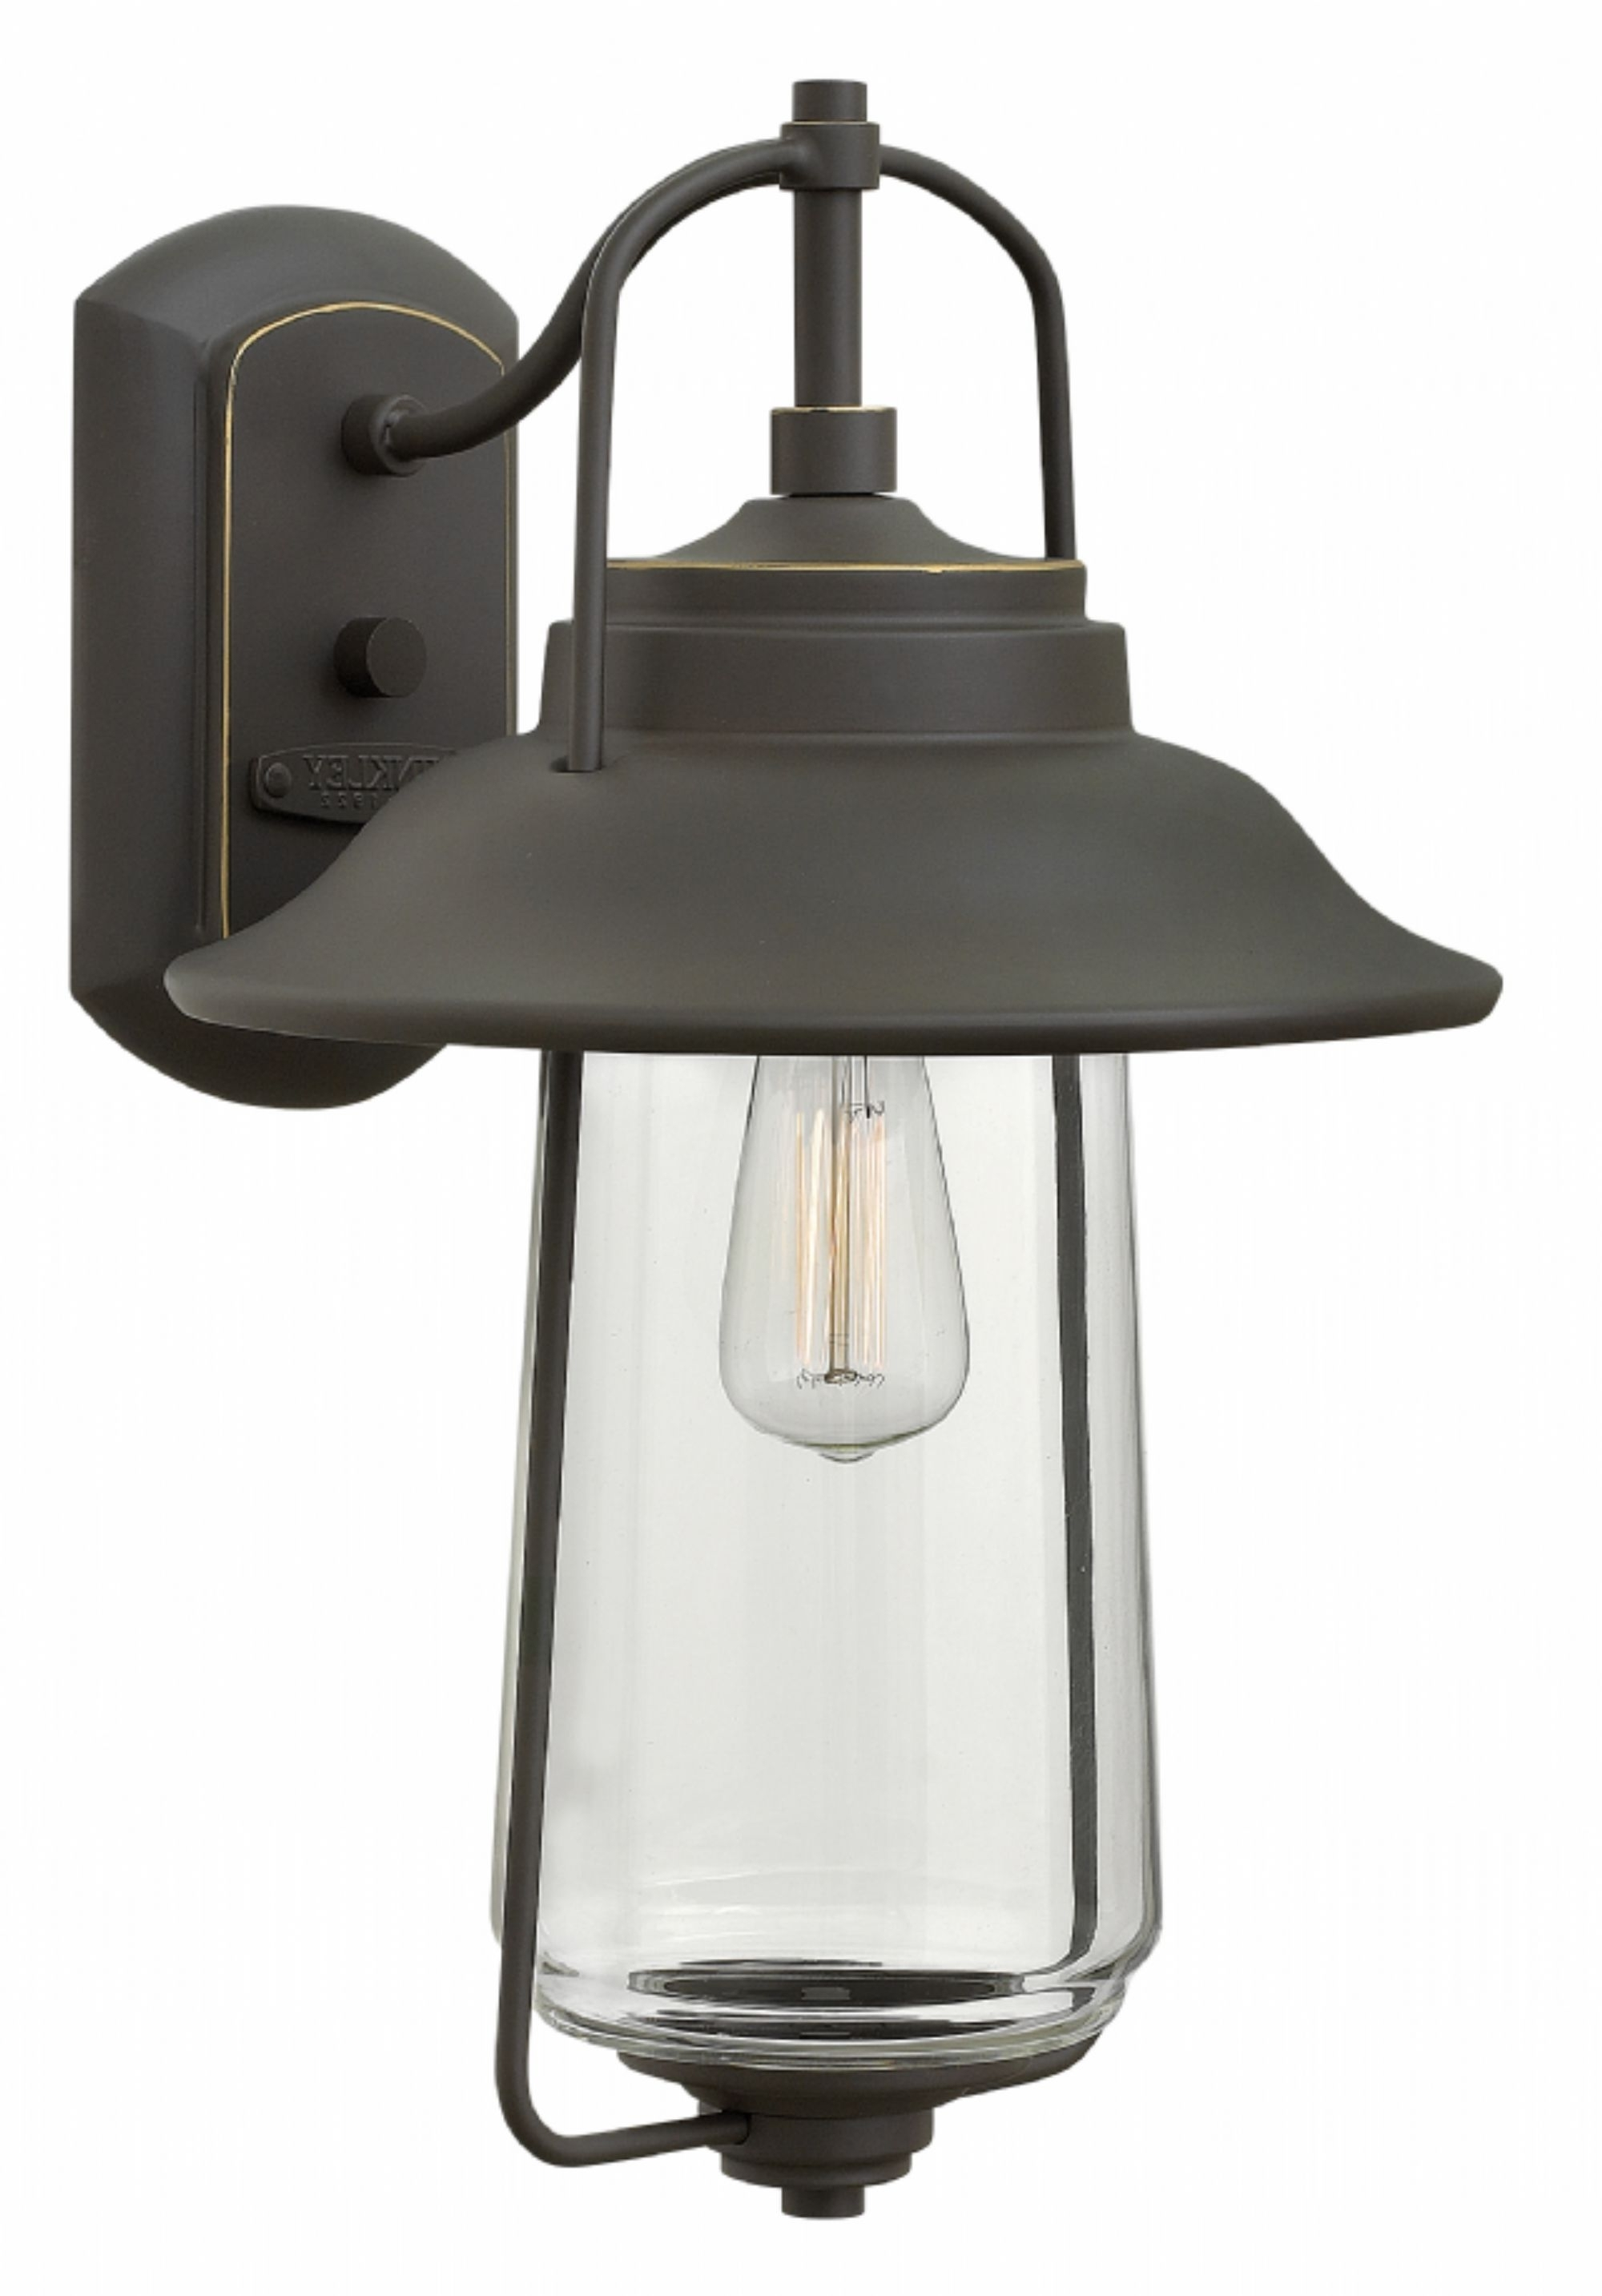 Oil Rubbed Bronze Belden Place > Exterior Wall Mount With Best And Newest Hinkley Outdoor Ceiling Lights (View 15 of 20)